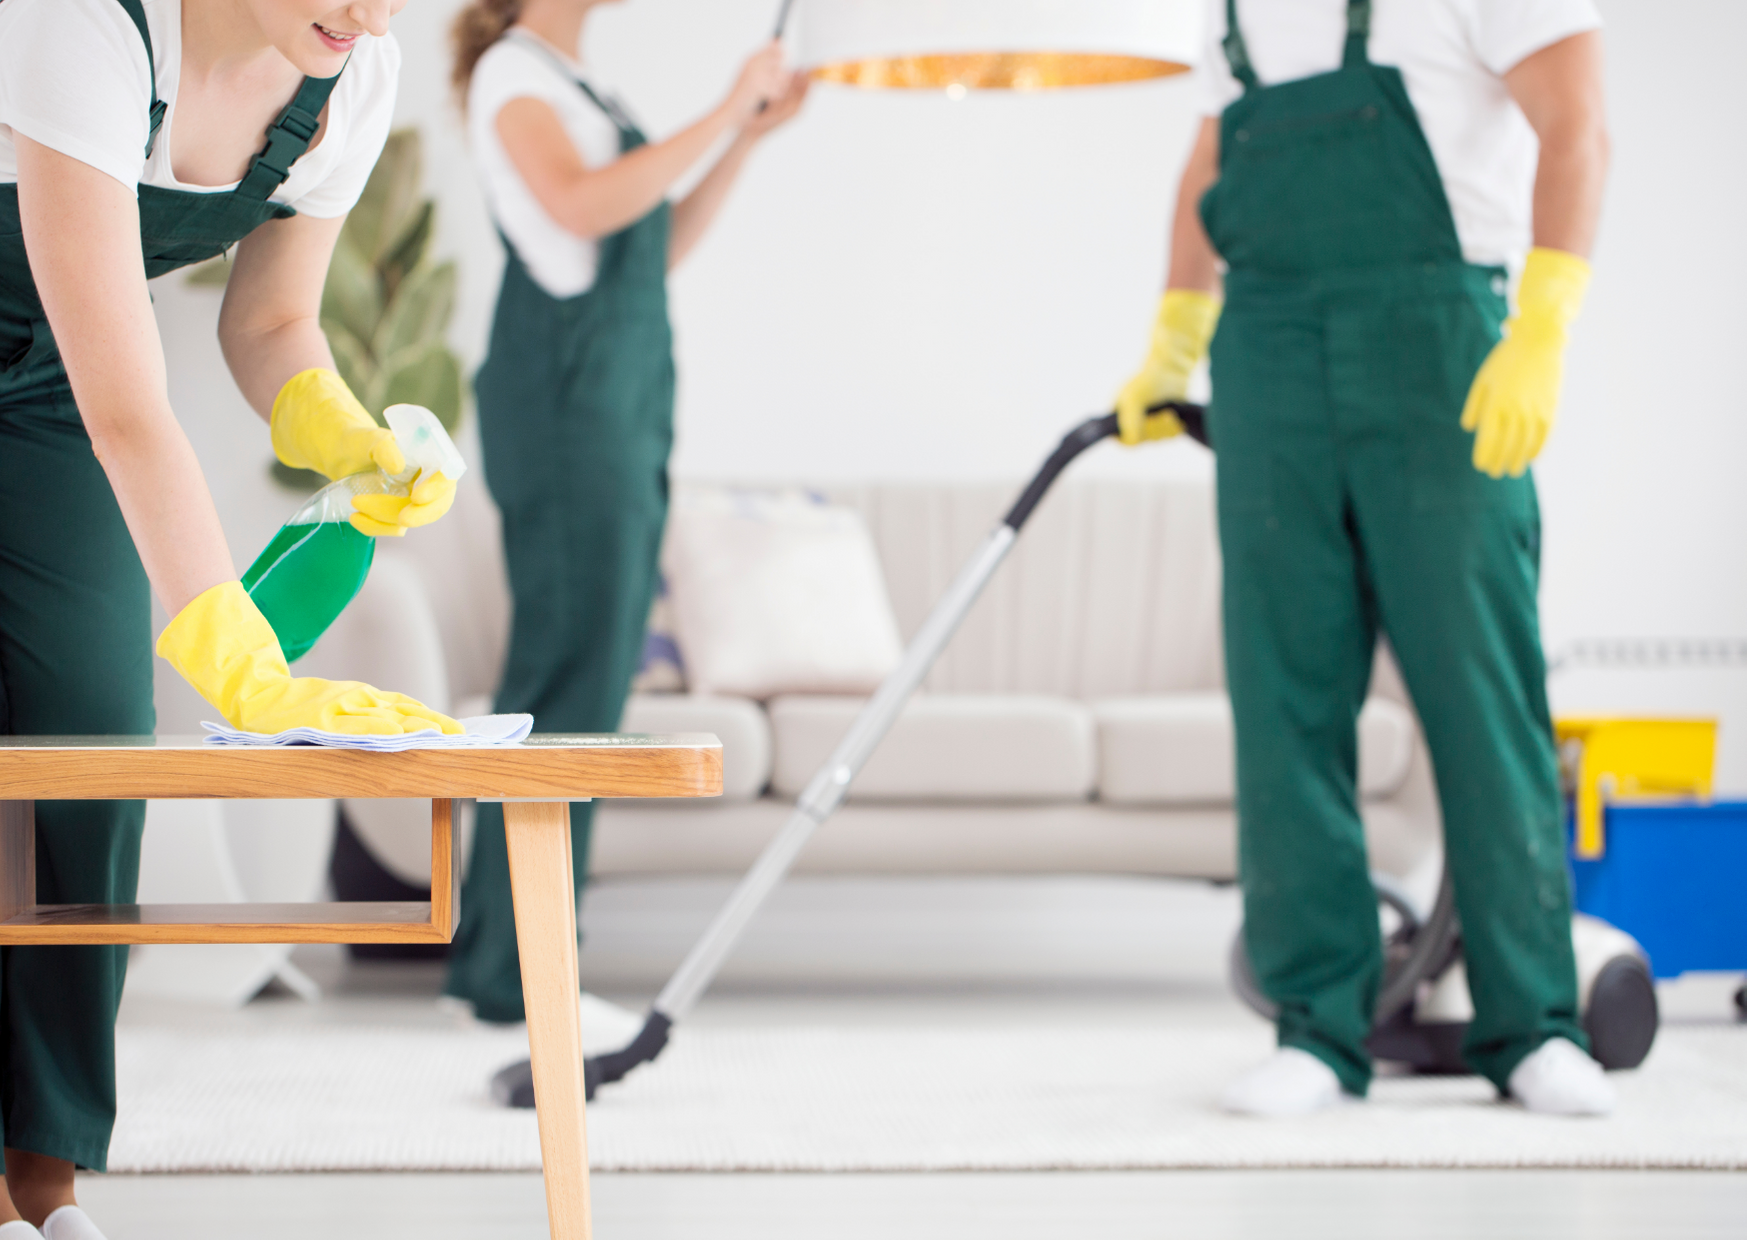 Room cleaning services near me